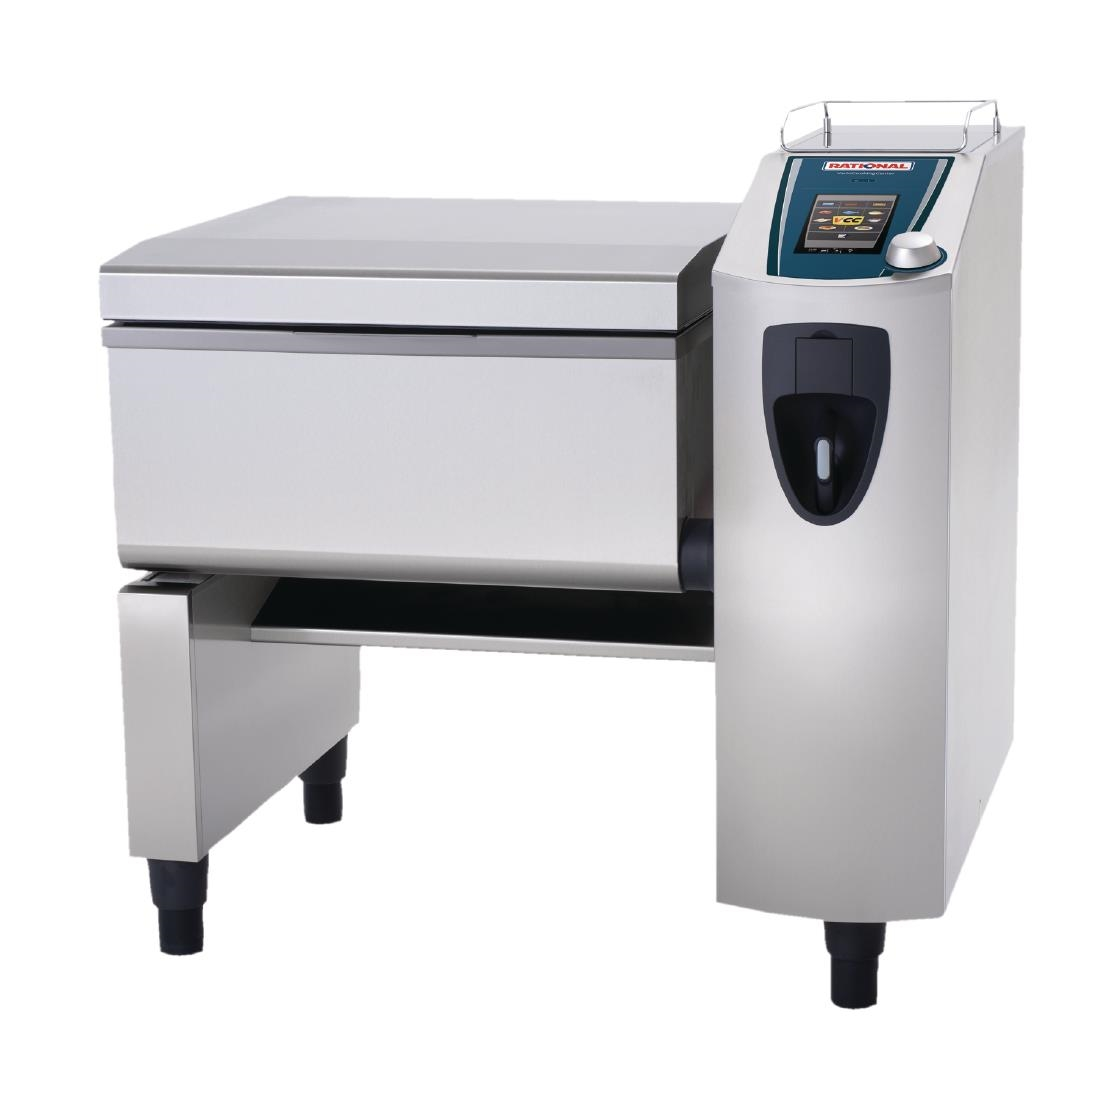 Image of Rational VarioCooking Centre VCC211 Dynamic with Pressure